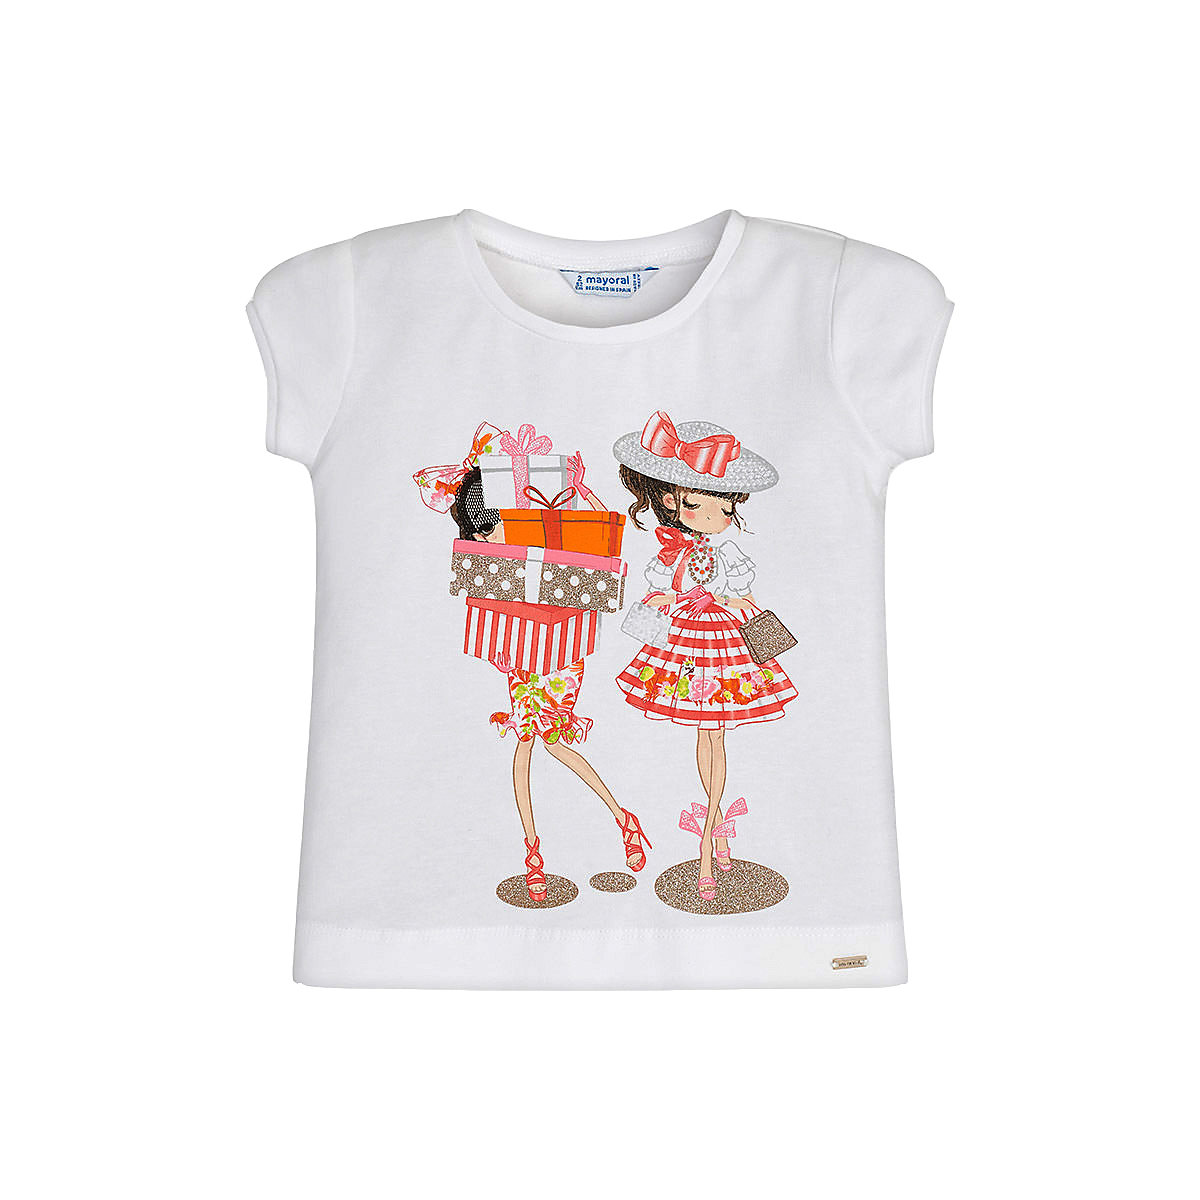 T-Shirts MAYORAL 10681406 Children sClothing T-shirt with short sleeves polo shirt for boys and girls